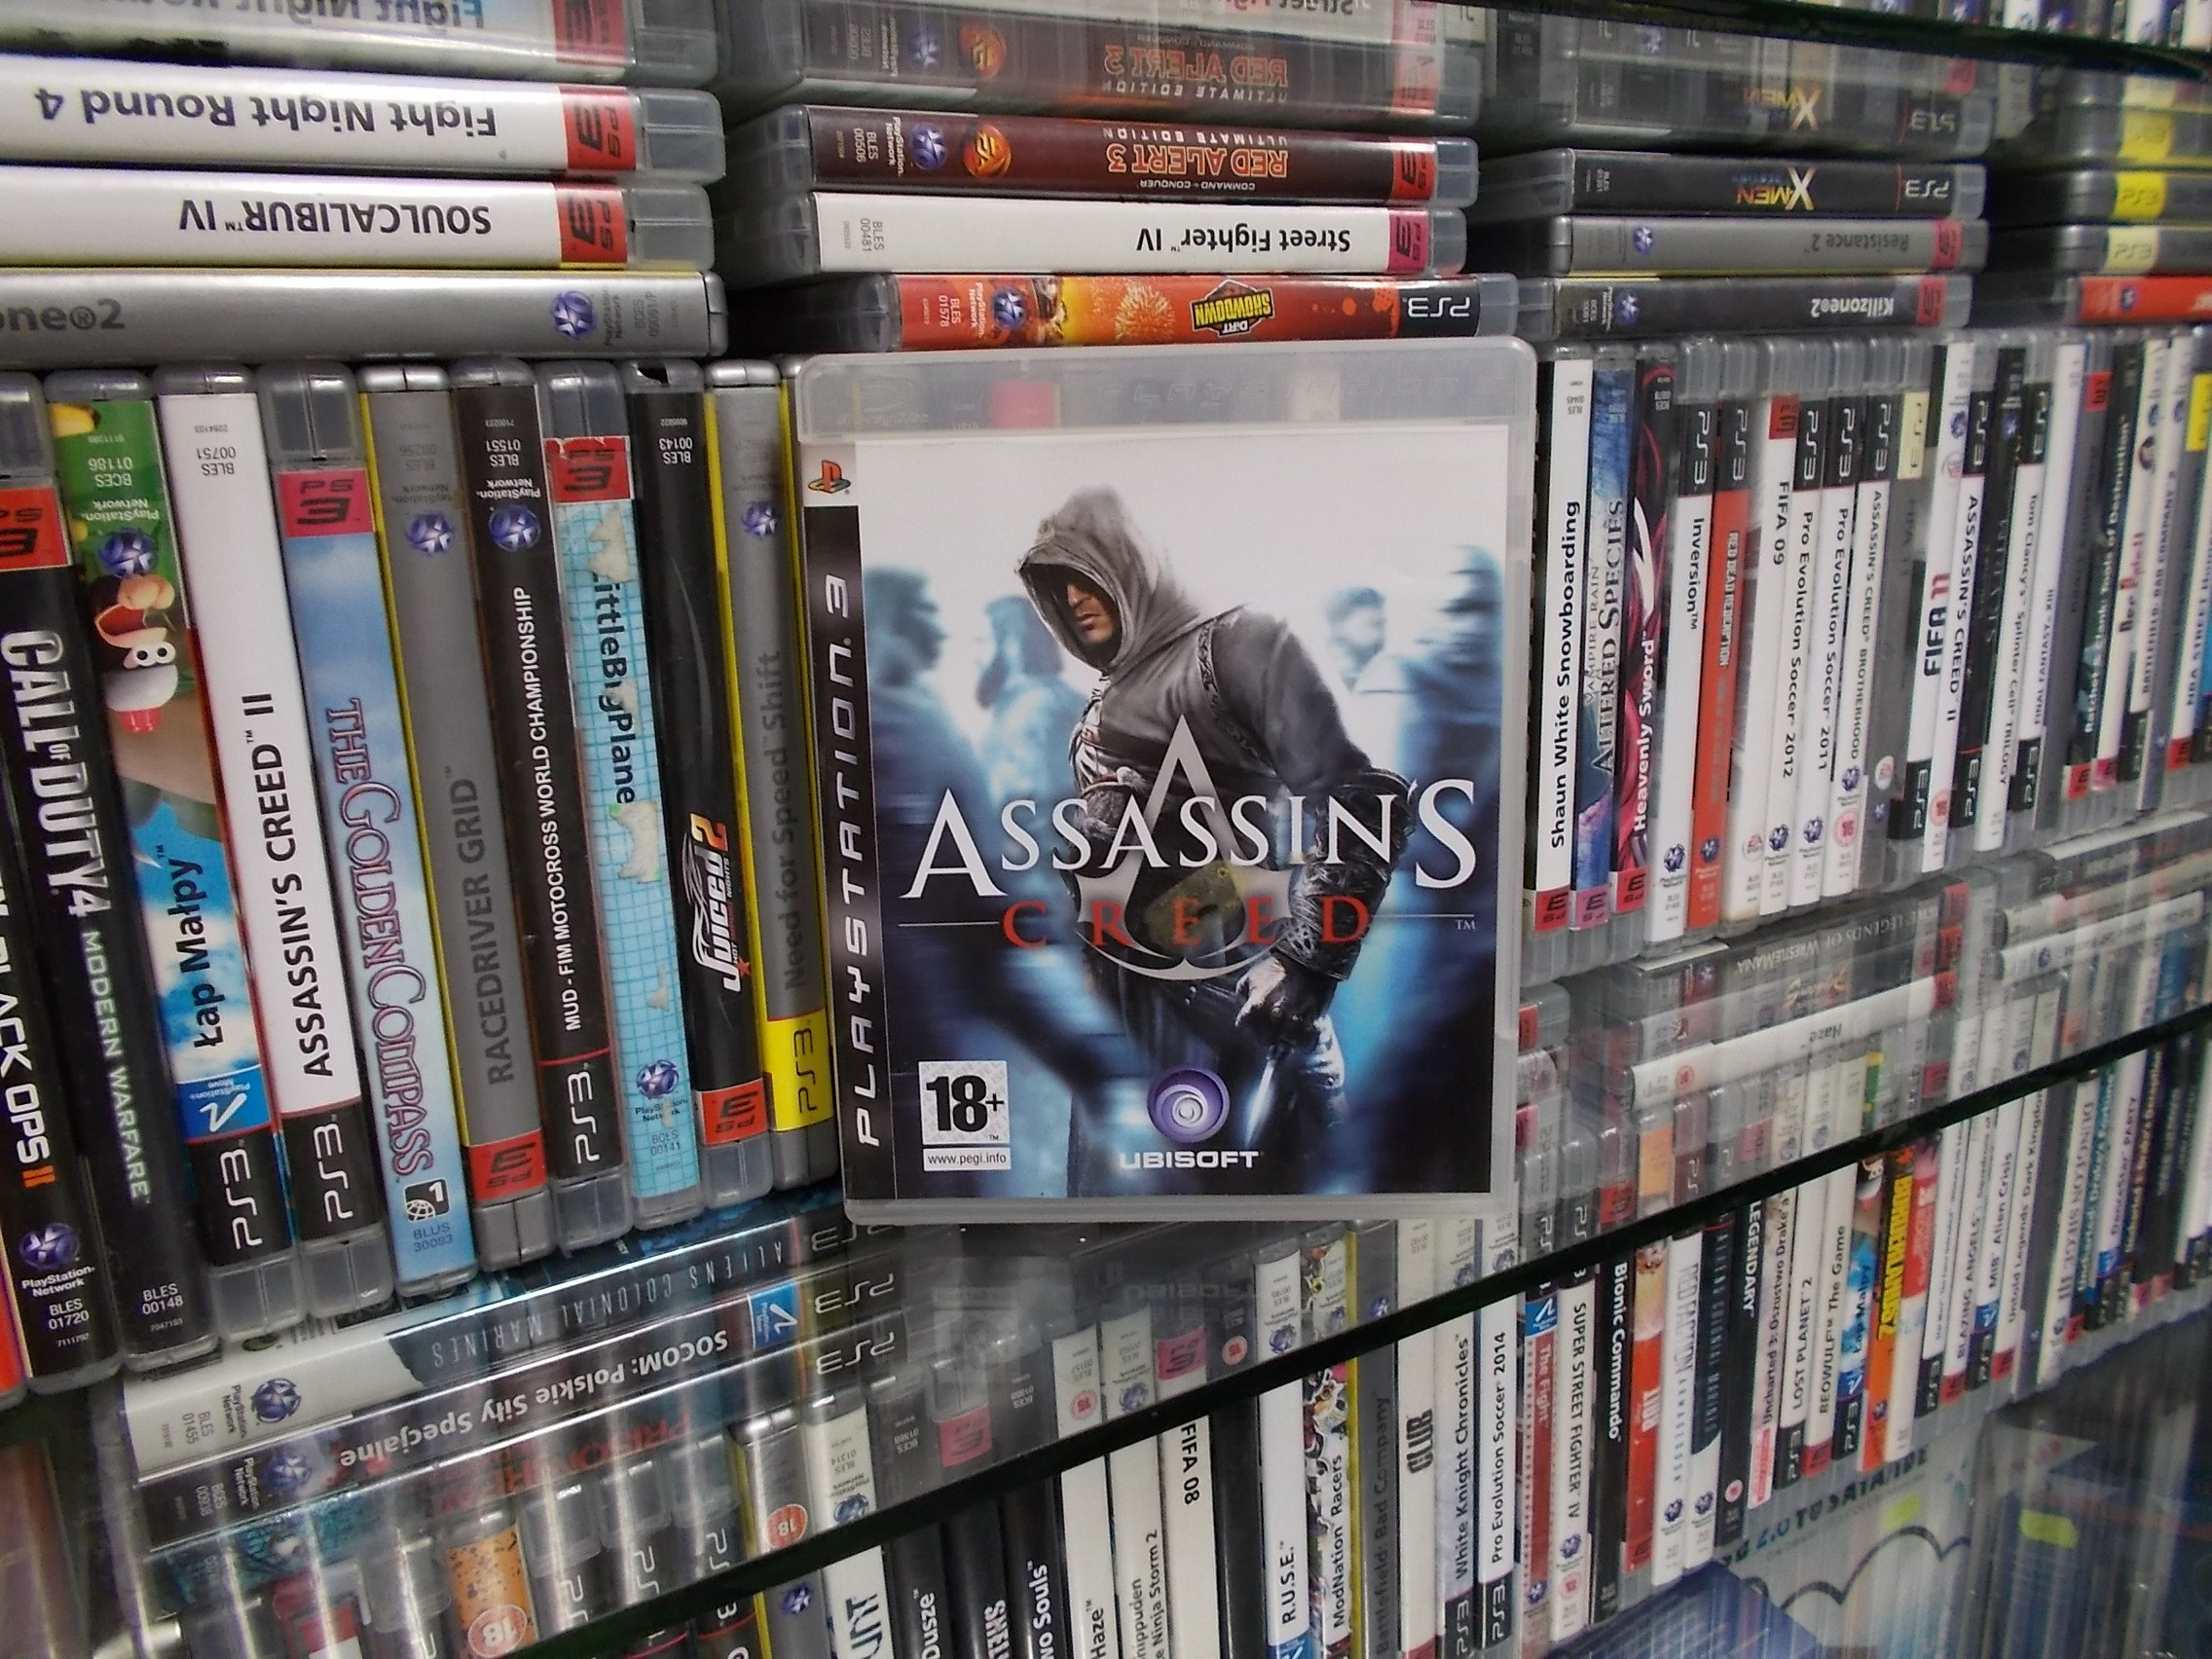 Assassin's Creed - GRA Ps3 - Opole 0017